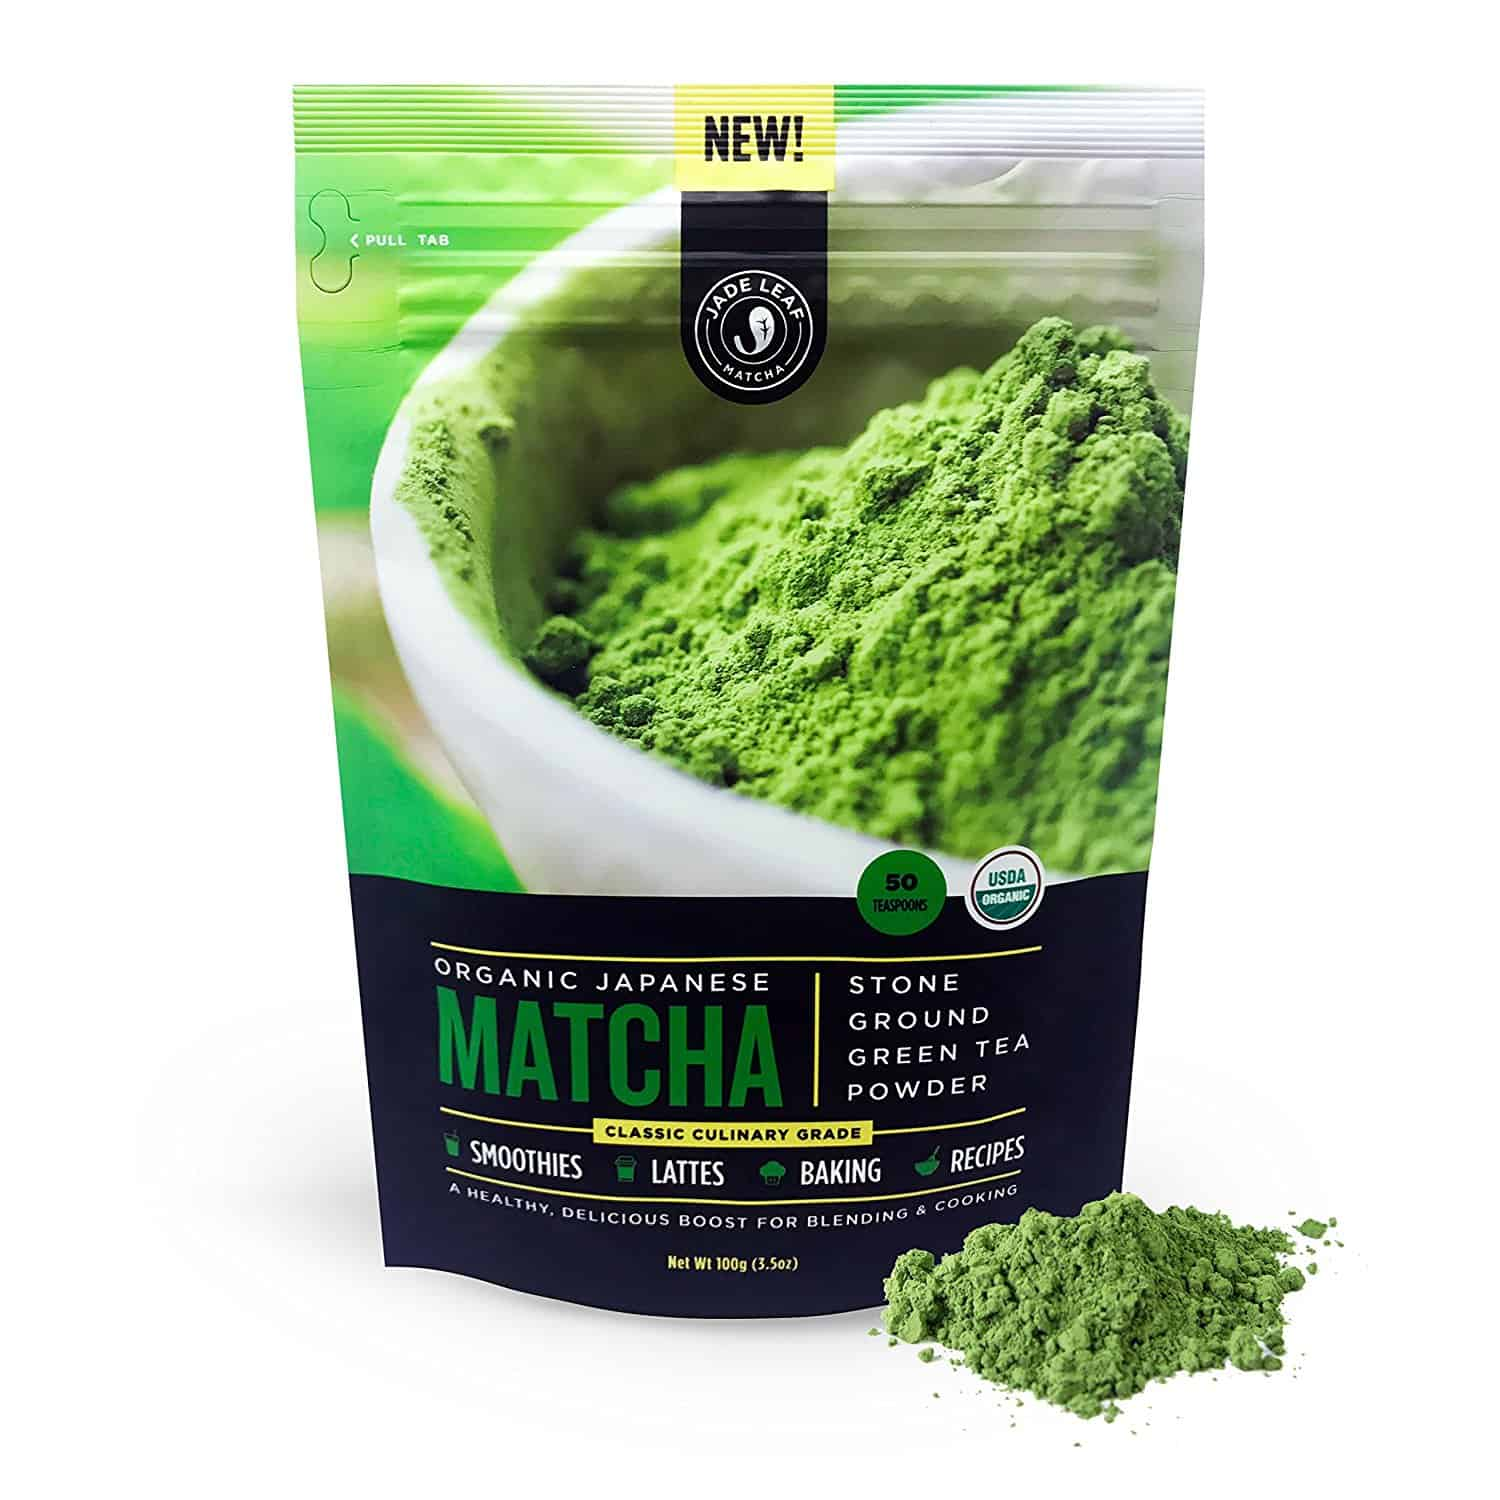 Matcha Green Tea Powder from Japan